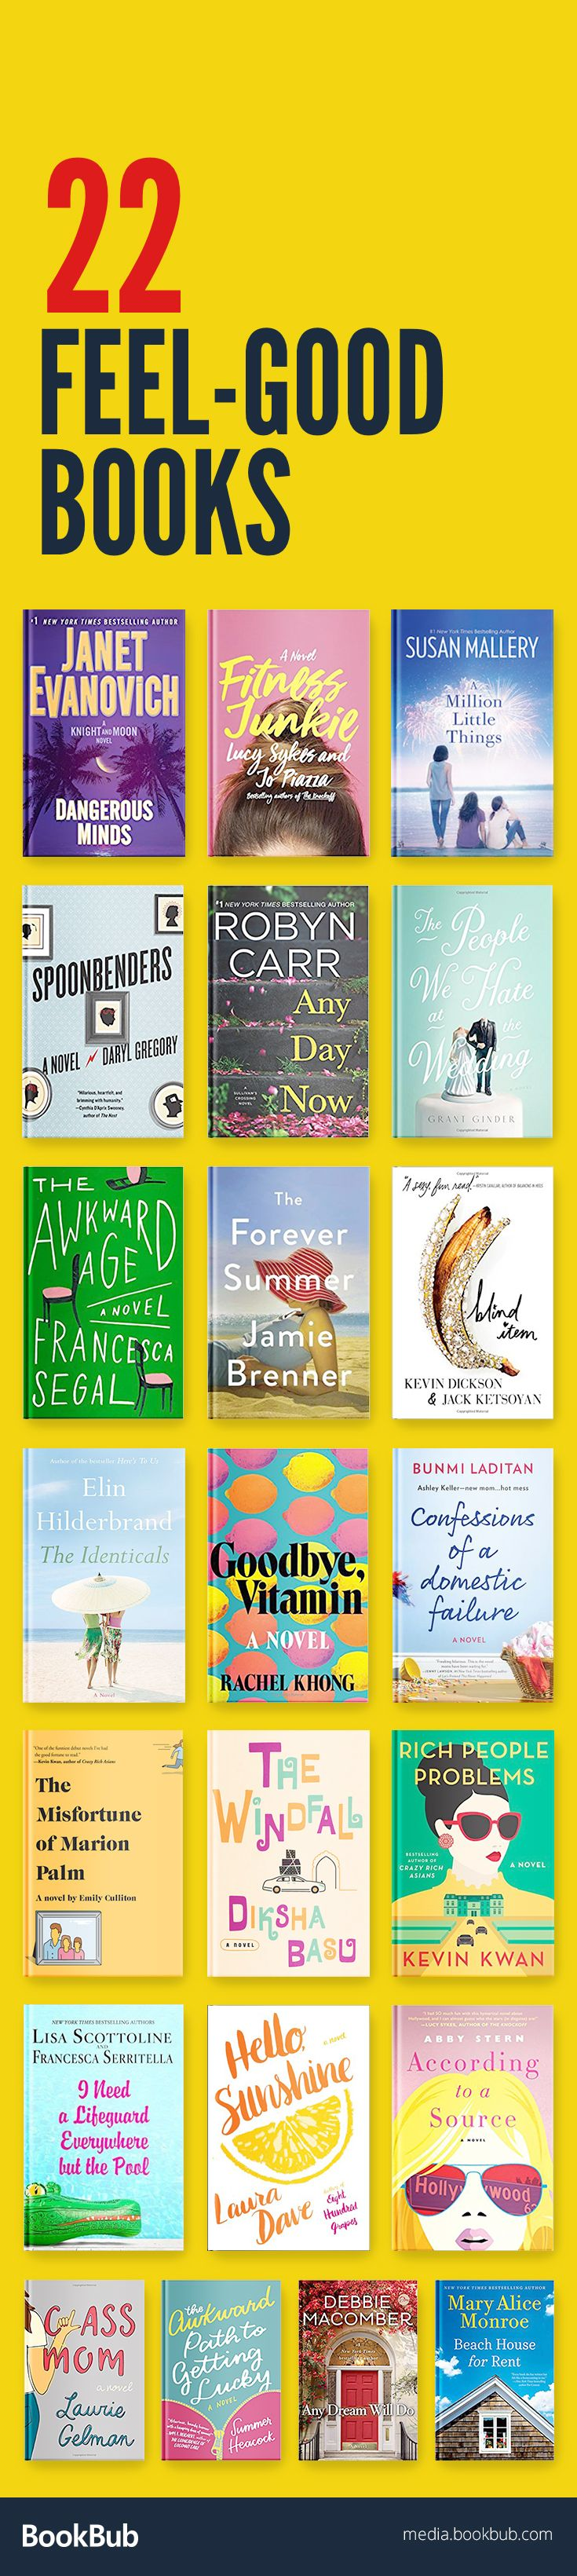 22 feel-good books for women. These inspirational, empowering, and funny books are sure to leave you with a smile on your face and make you laugh out loud.